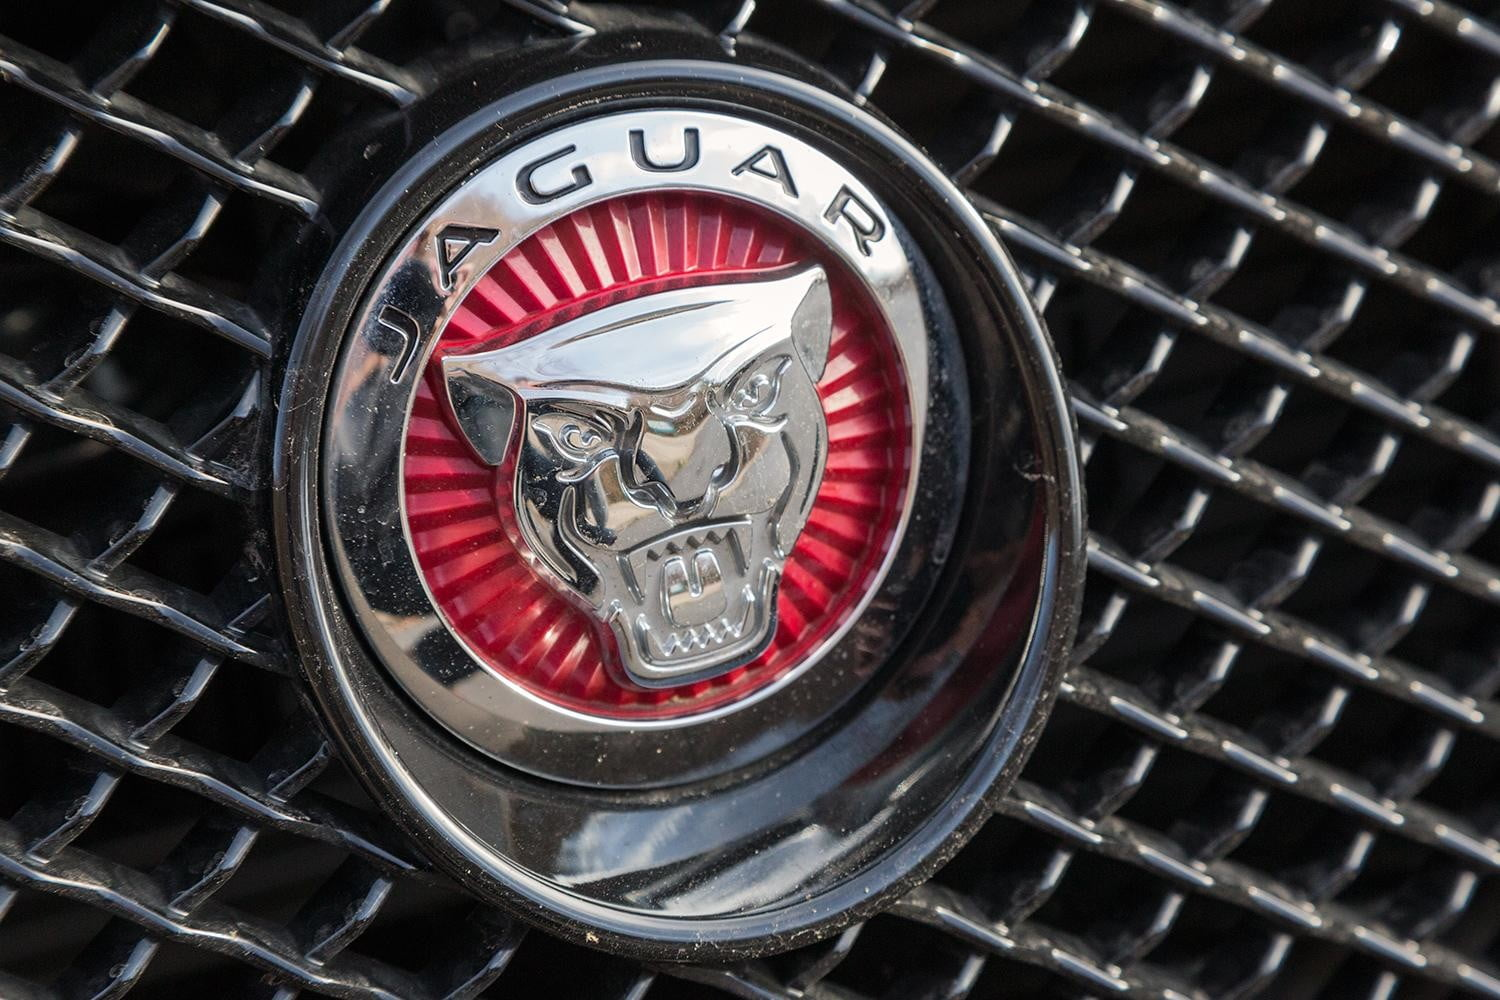 The cubs keep coming as jaguar announces another brand new suv buycottarizona